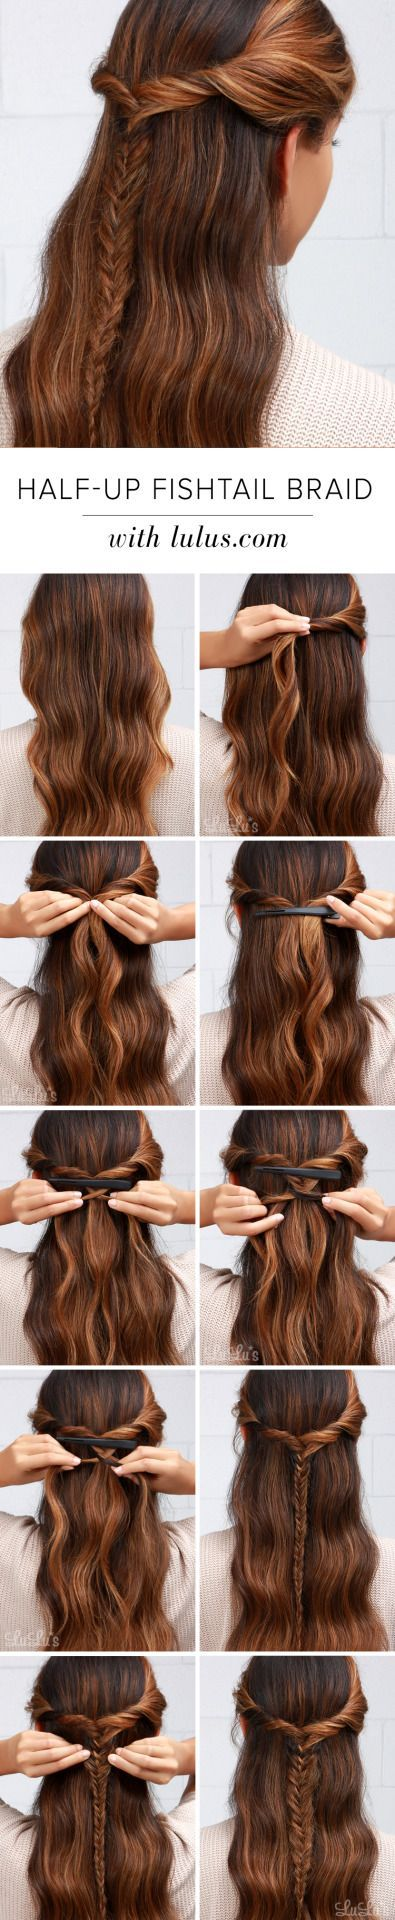 LuLu*s How-To: Half-Up Fishtail Braid